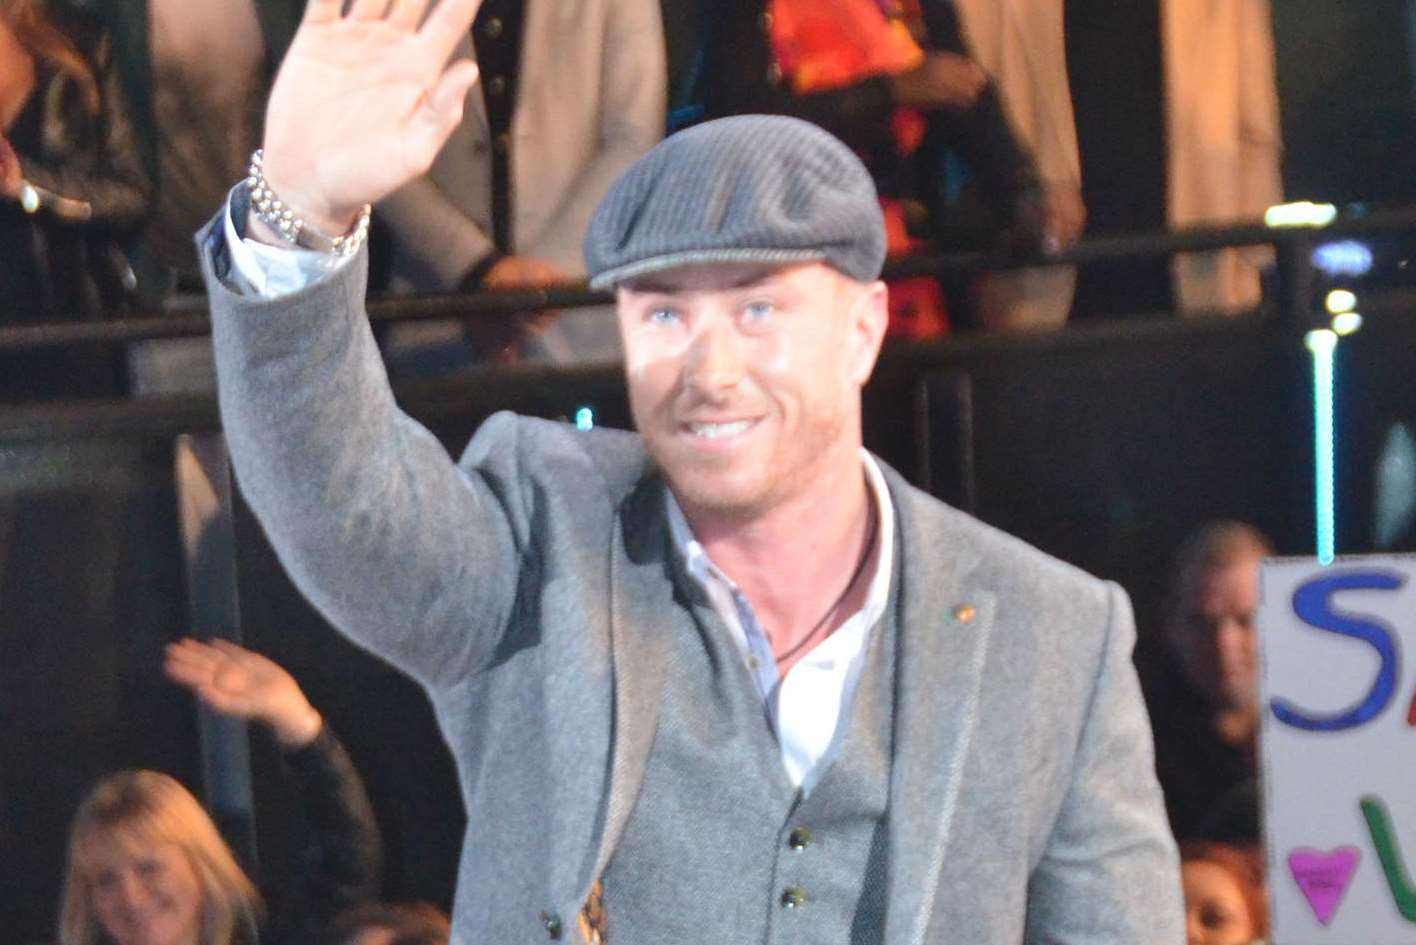 James Jordan enters the Celebrity Big Brother house. Picture: Channel 5